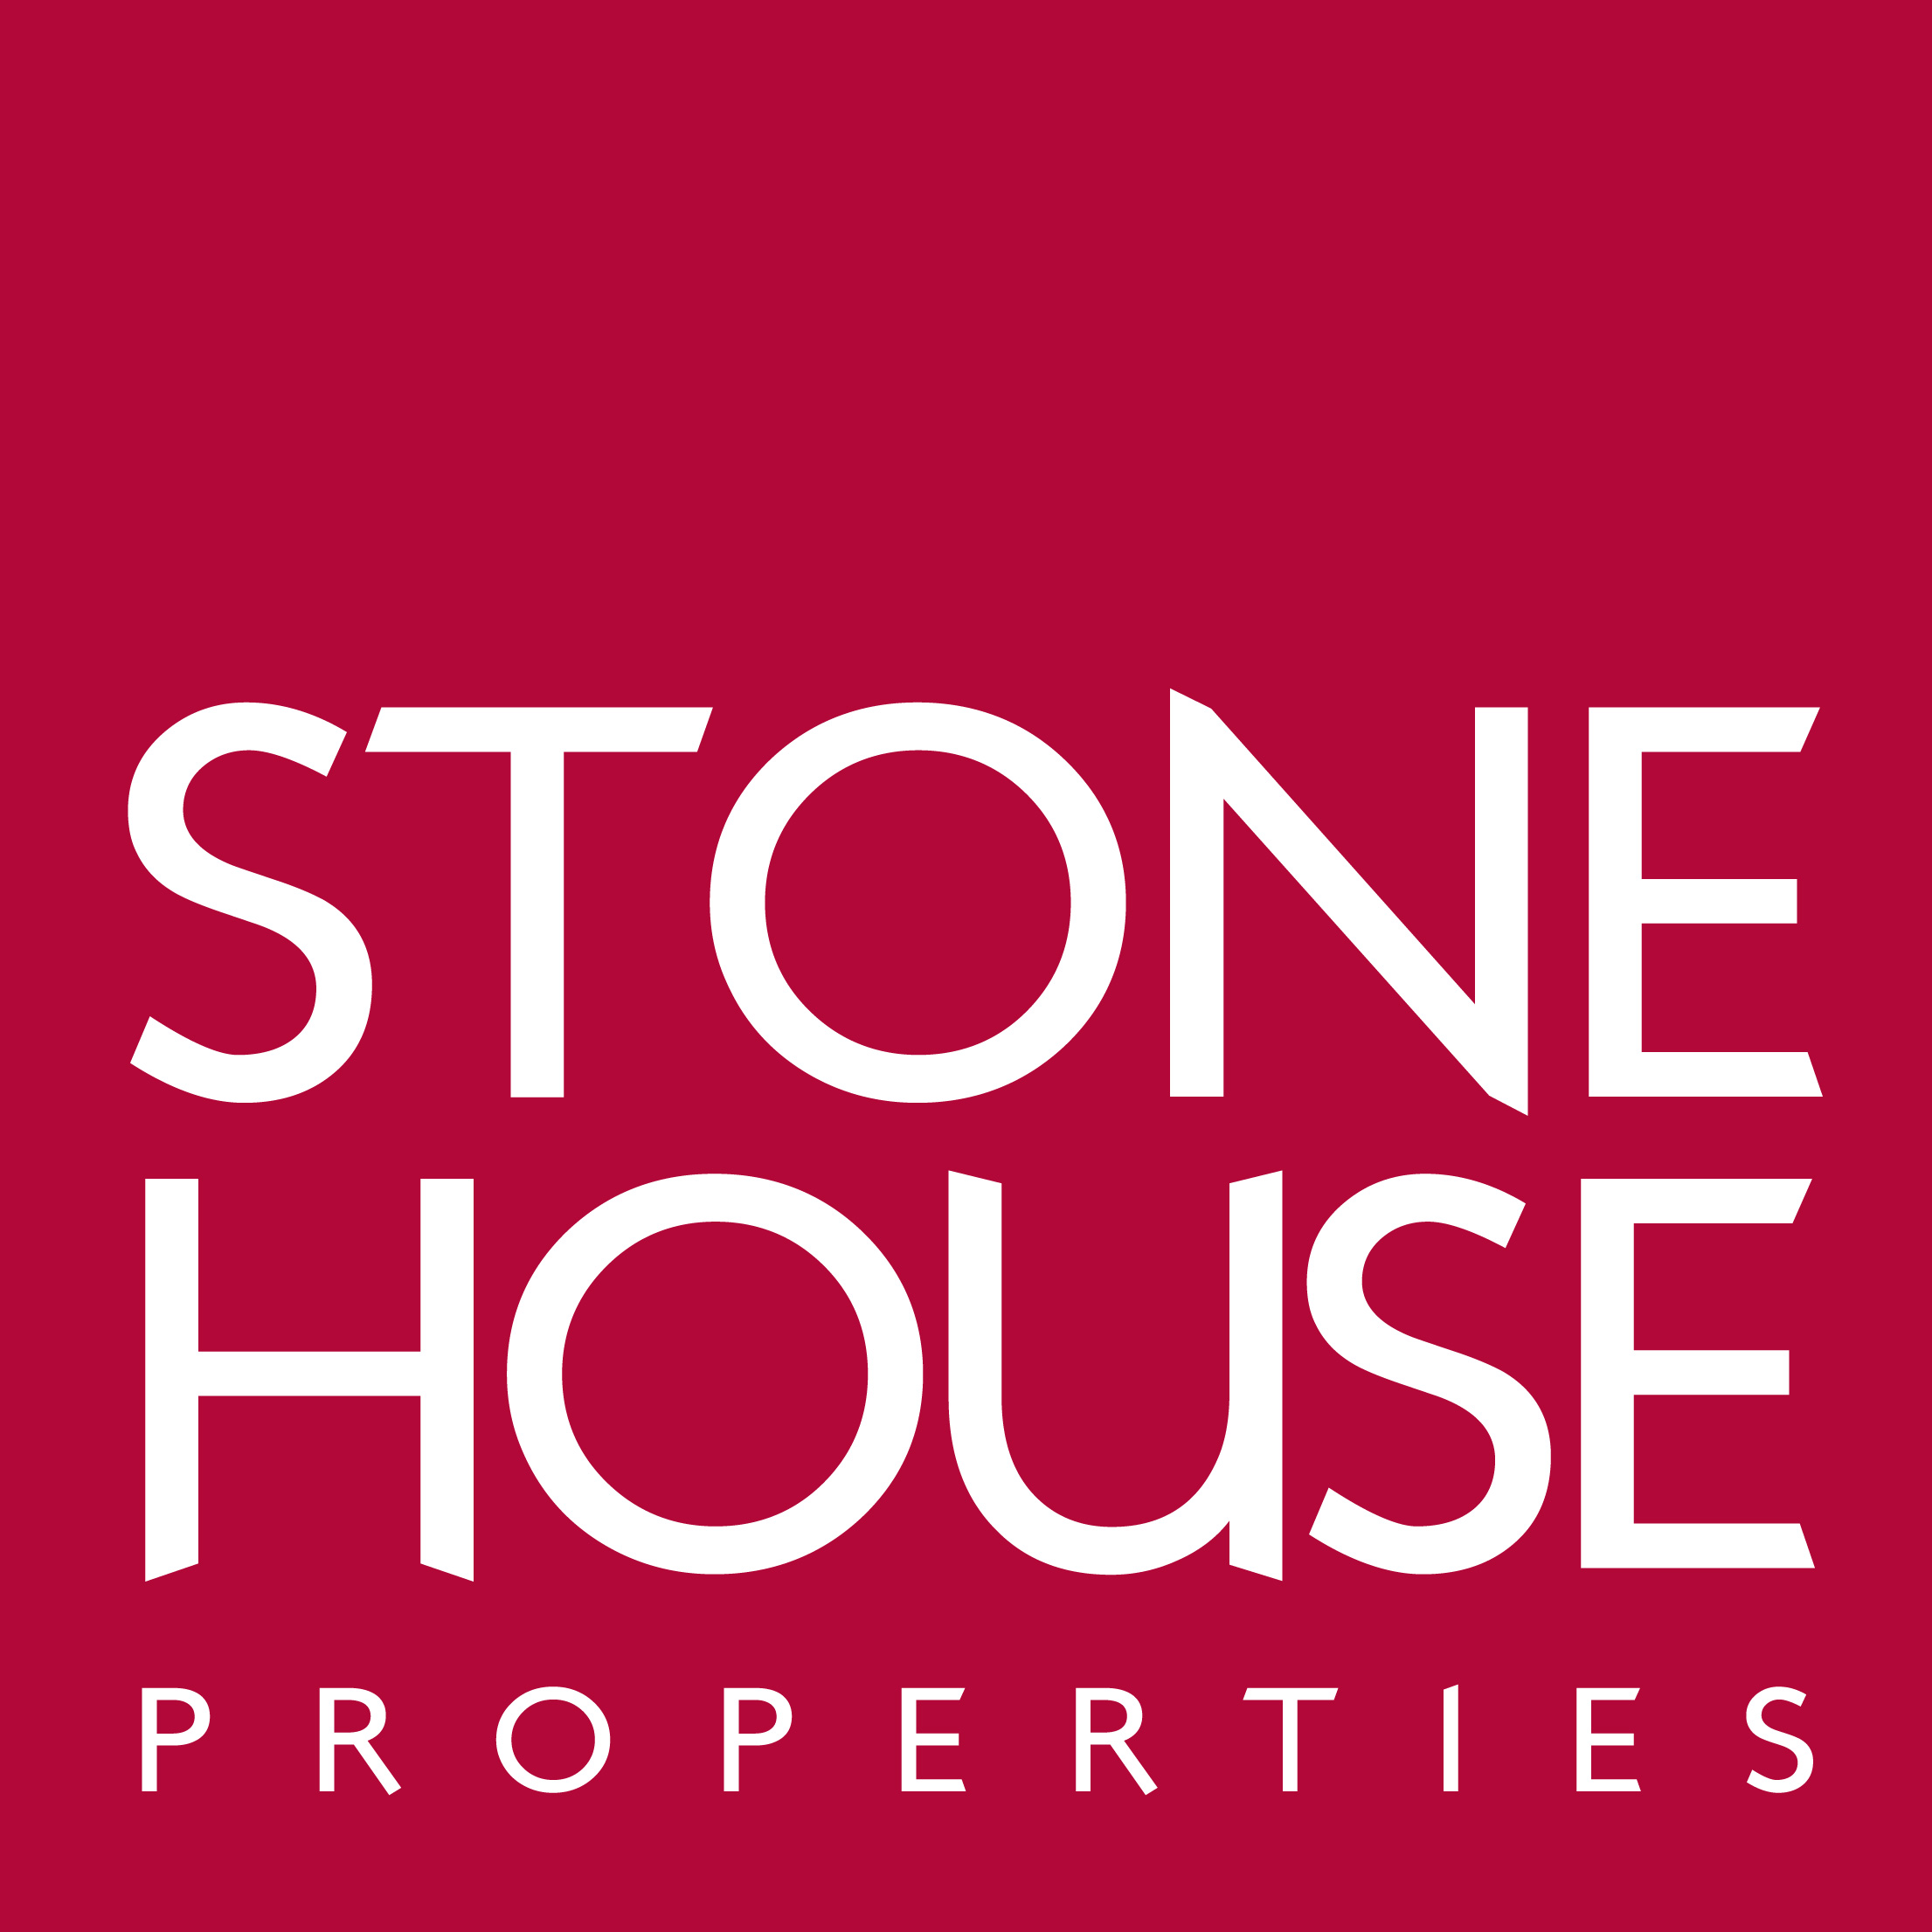 why stonehouse image